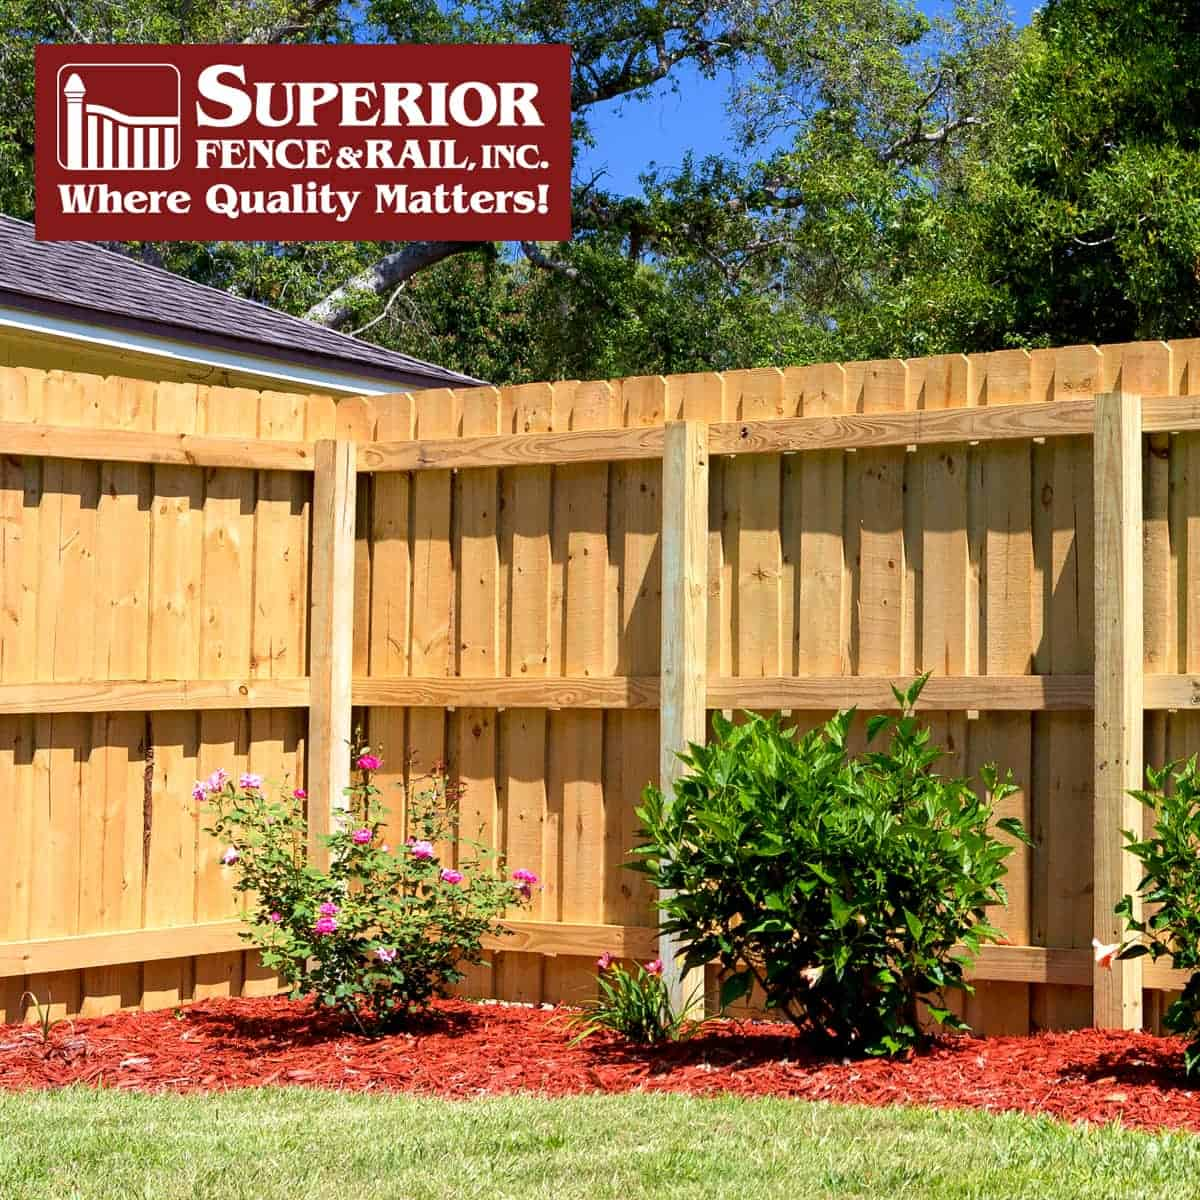 https://www.superiorfenceandrail.com/wp-content/uploads/2020/07/Lawrenceville-Fence-Company-Contractor.jpg